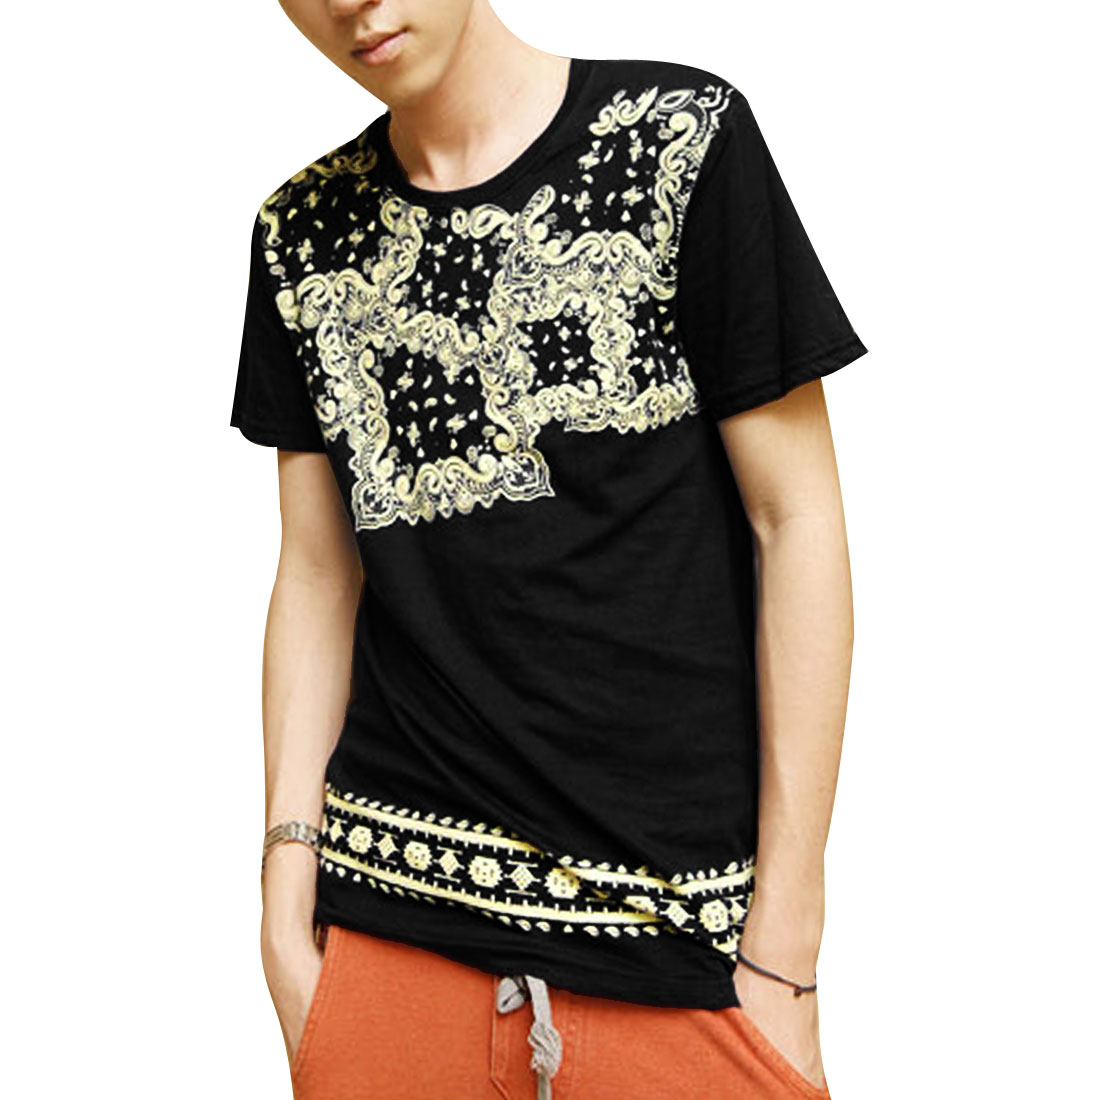 Round Neck Pullover National Style T-Shirt Top Black S for Man